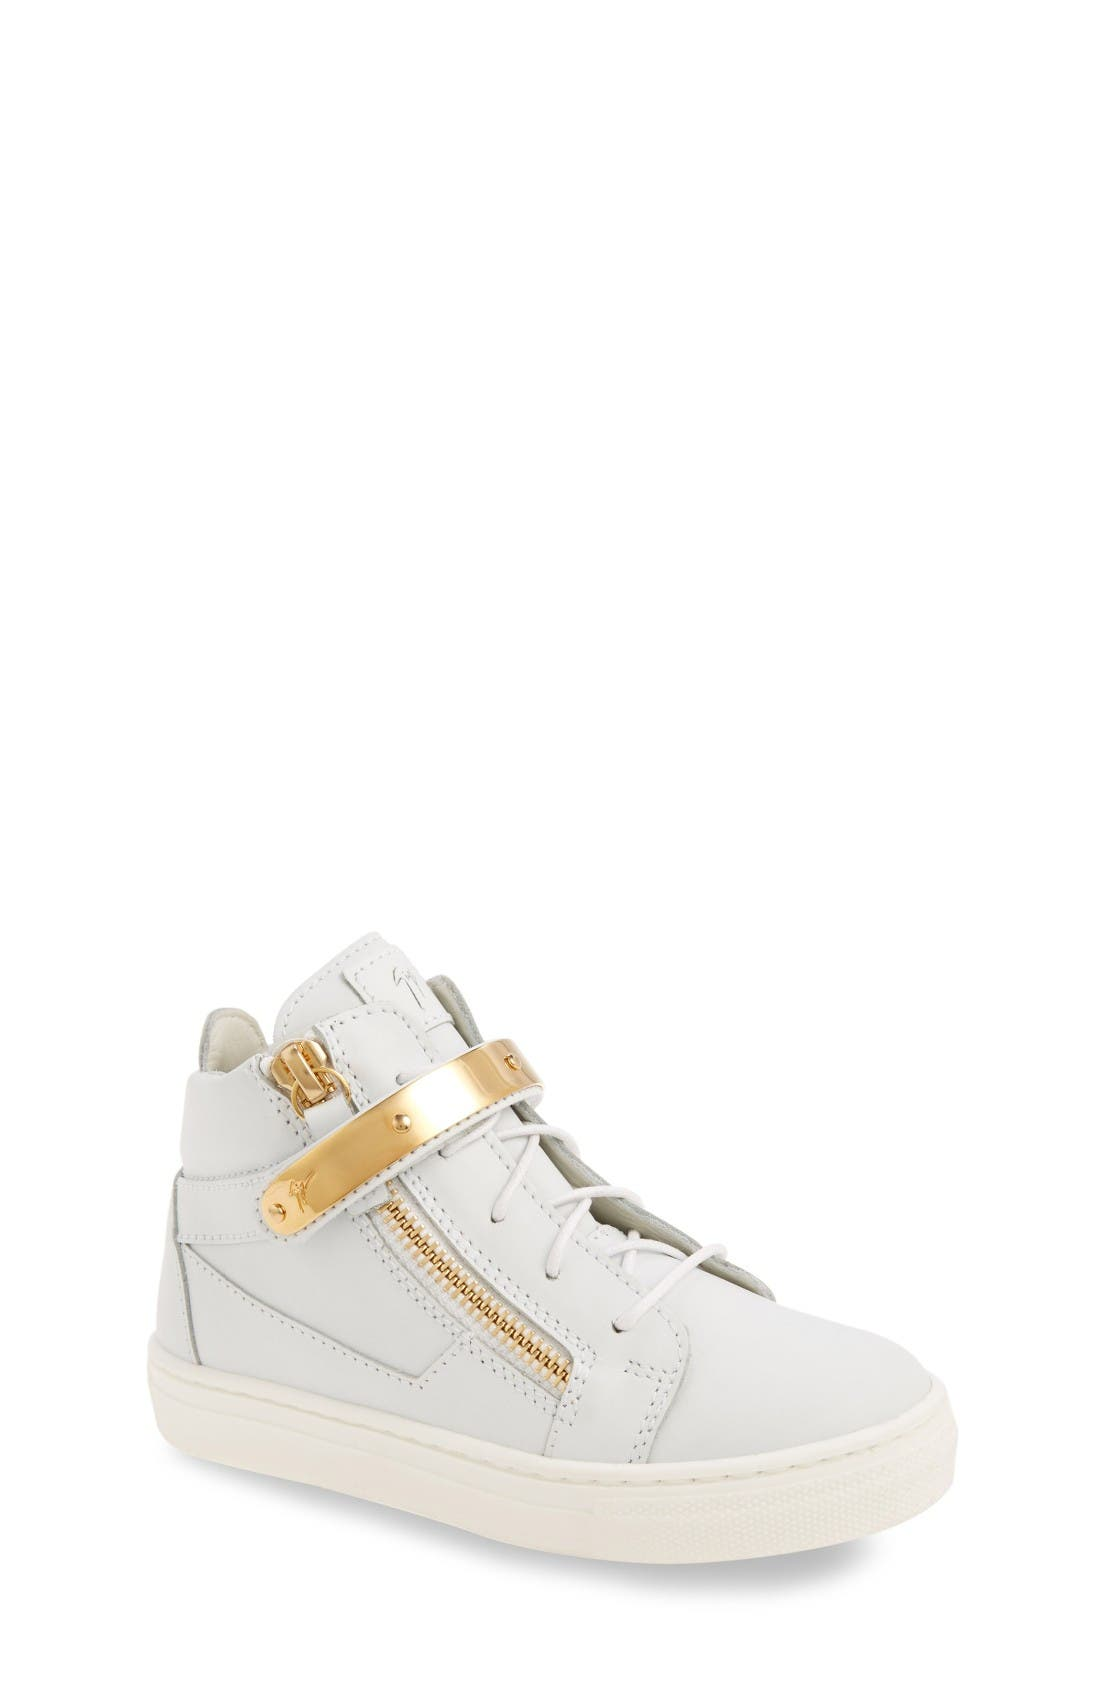 High Top Sneaker,                             Main thumbnail 1, color,                             White Smooth